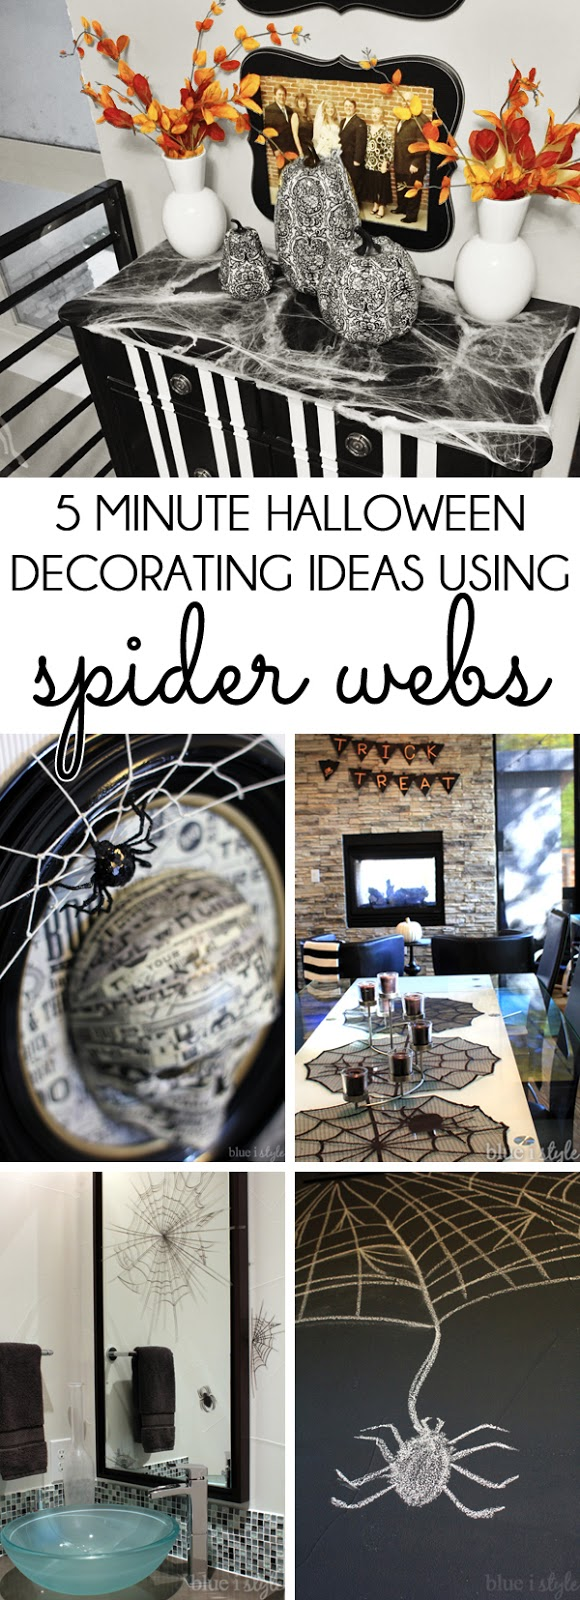 Halloween Decorating with Spider Webs